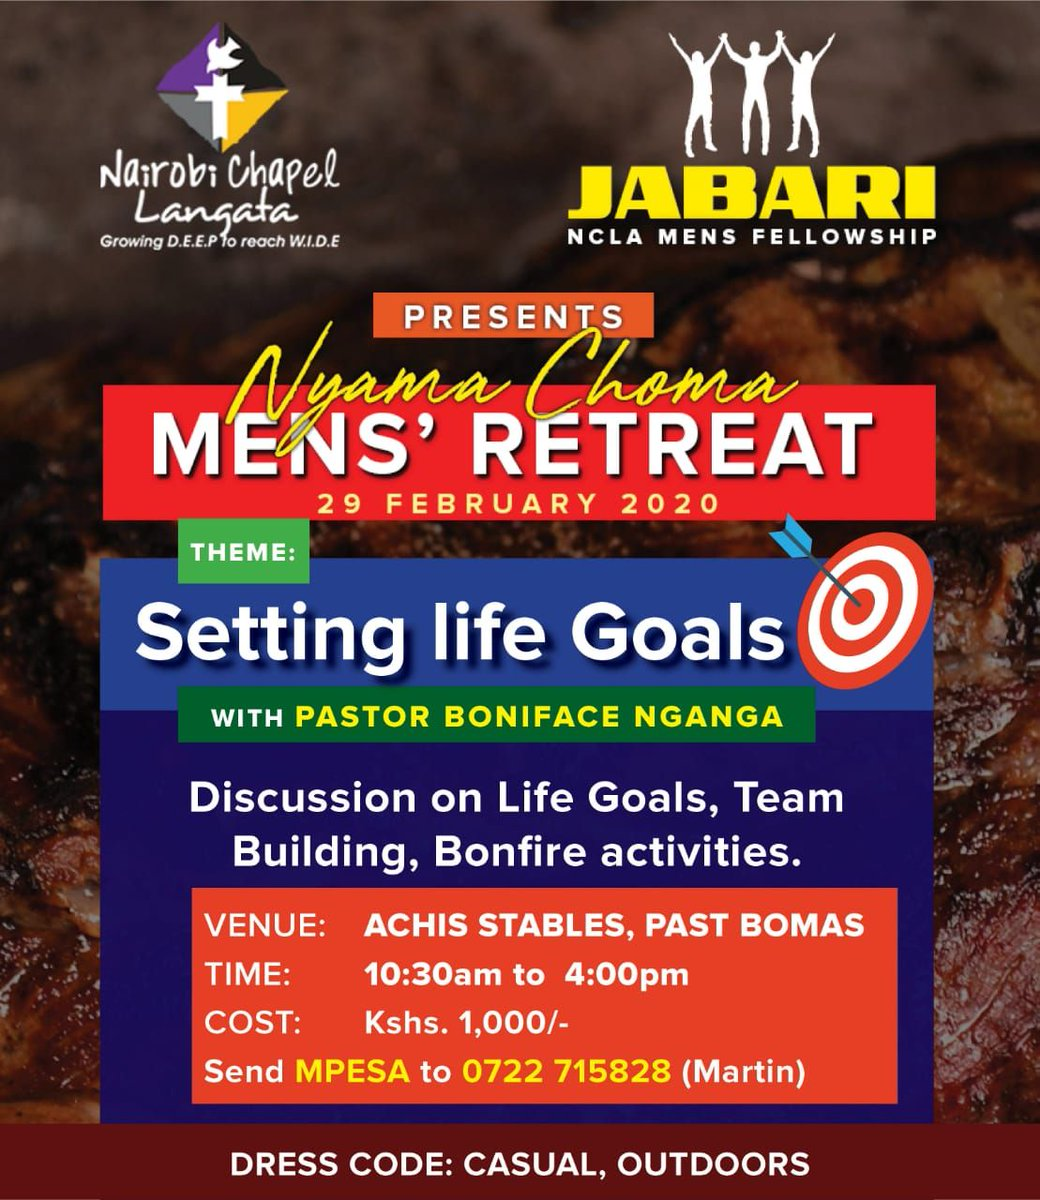 #Jabari which is the #MensMinistry at #NairobiChapelLangata invites all men to a #MensRetreat.   Hii sio #MensConference   #YearOfGraceExperience #NCLApic.twitter.com/SfNX3OwvWW